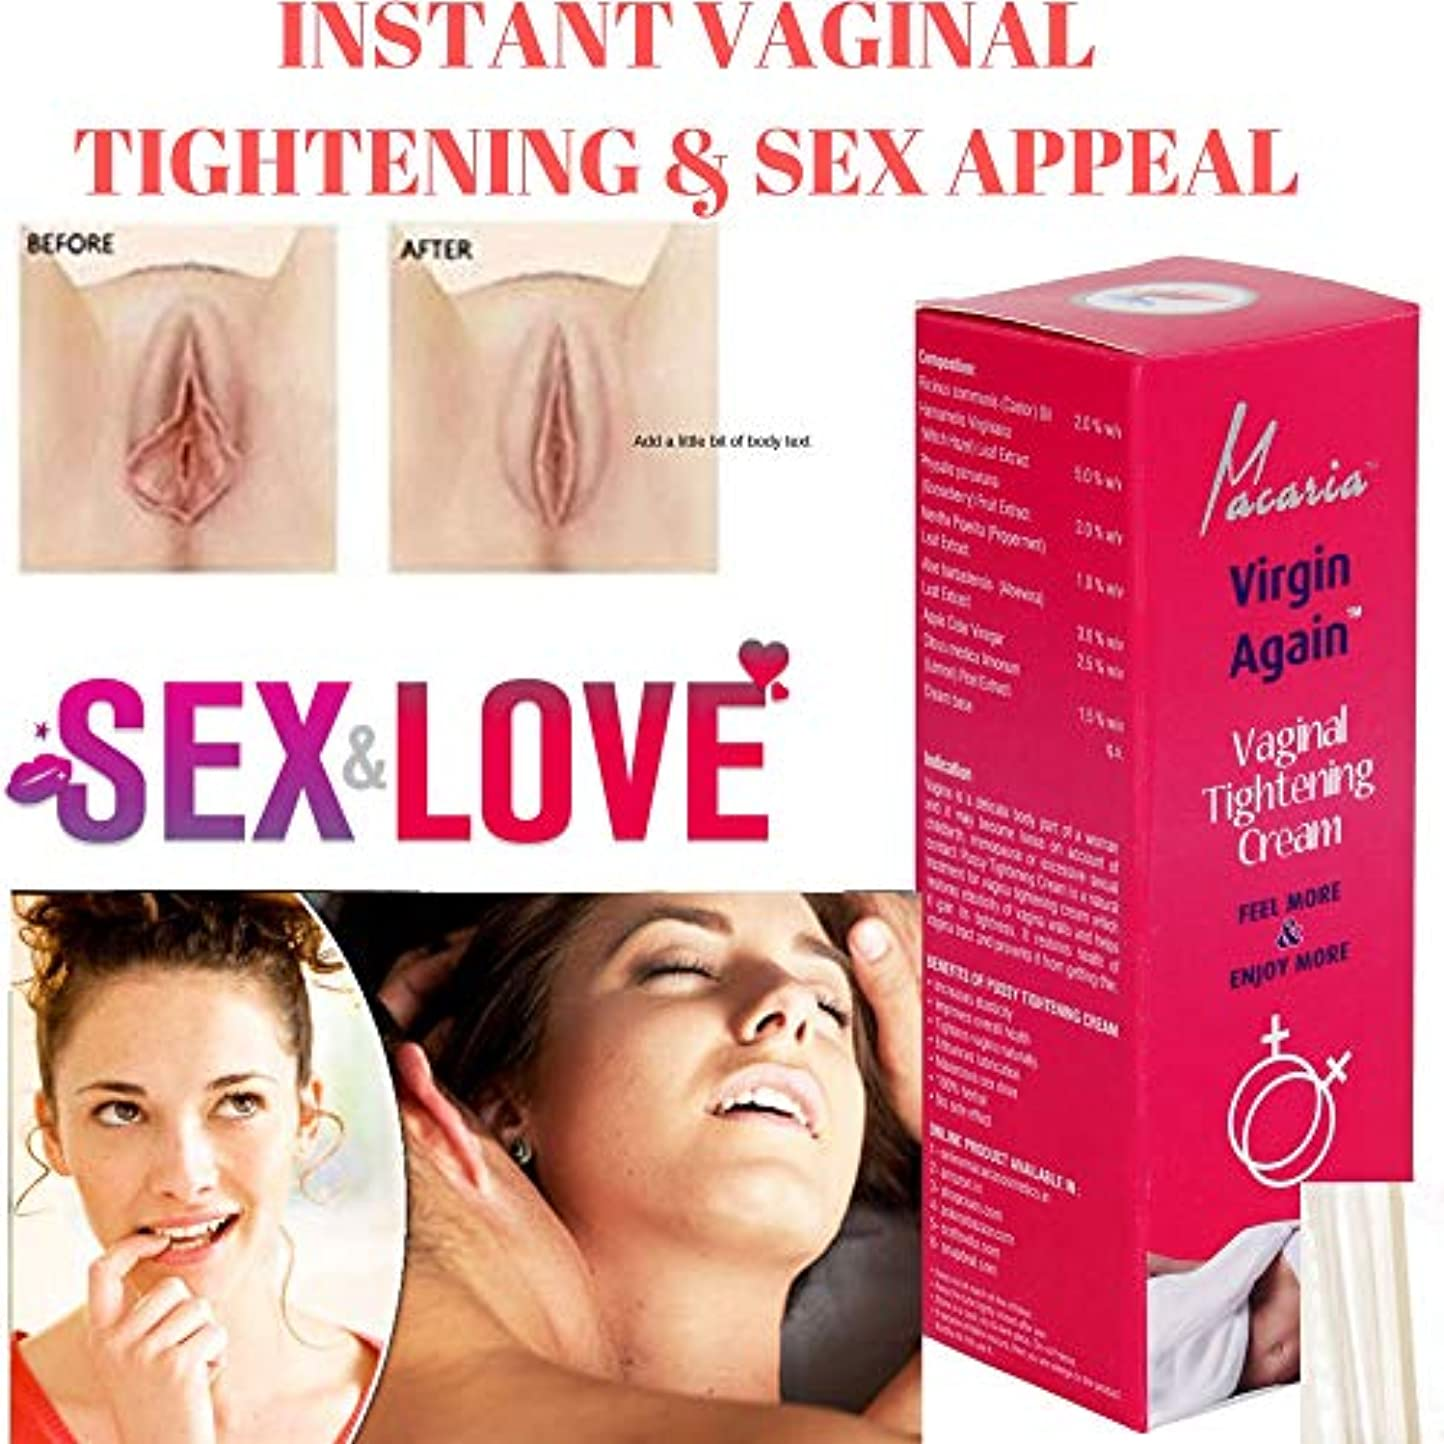 VAGINA TIGHTENING CREAM GEL & LOTION